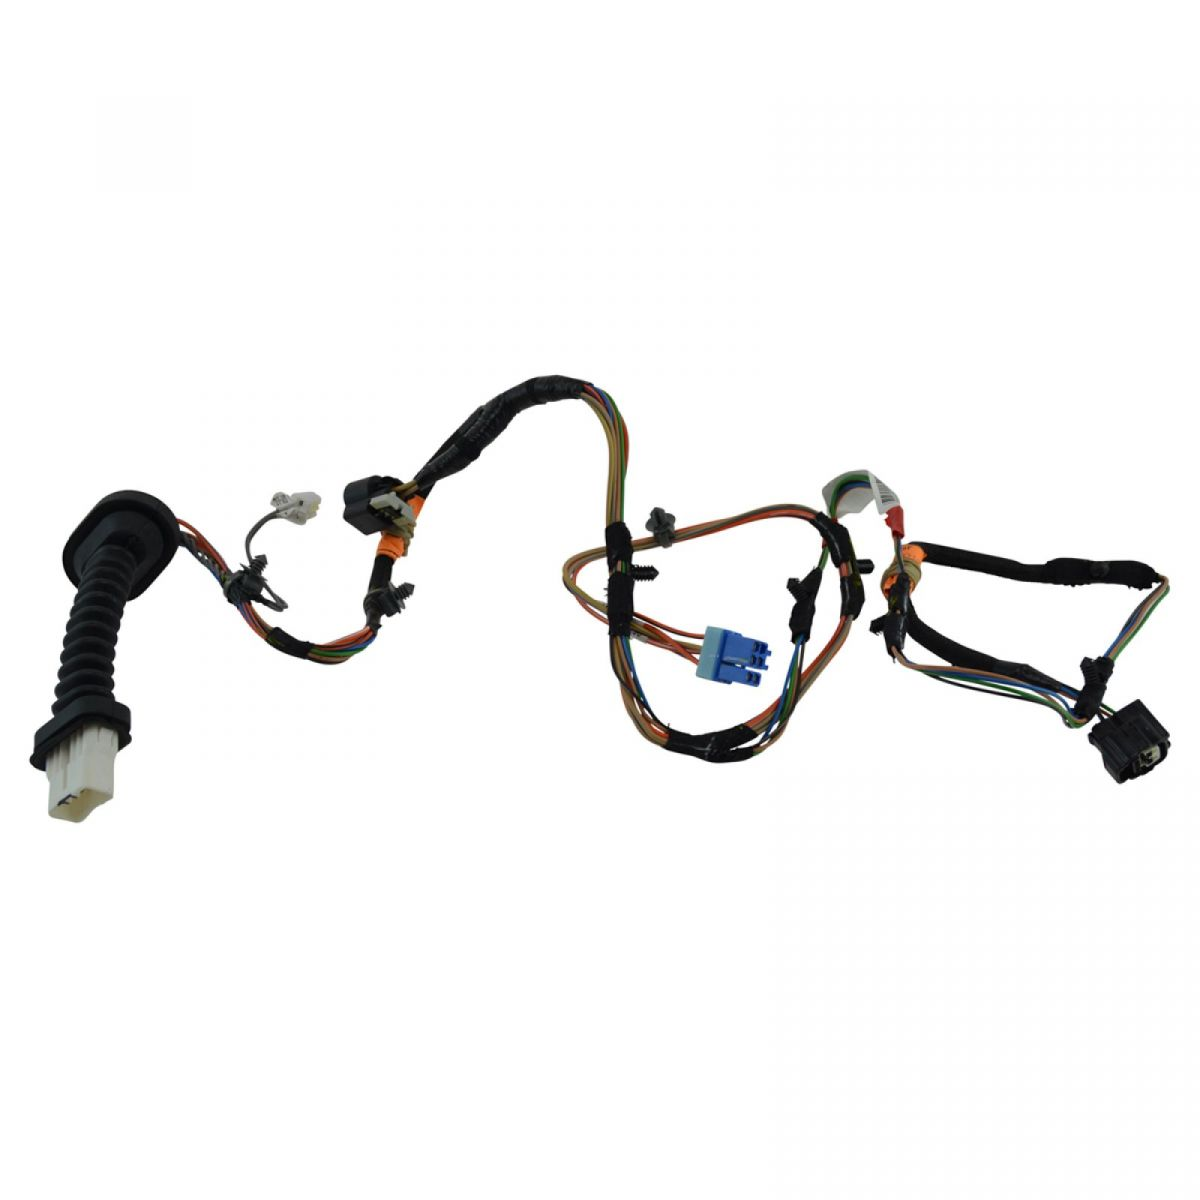 AM 3783557712 oem 56051393ac rear door wiring harness for 06 09 dodge ram mega wiring harness for 2005 dodge ram 2500 at readyjetset.co